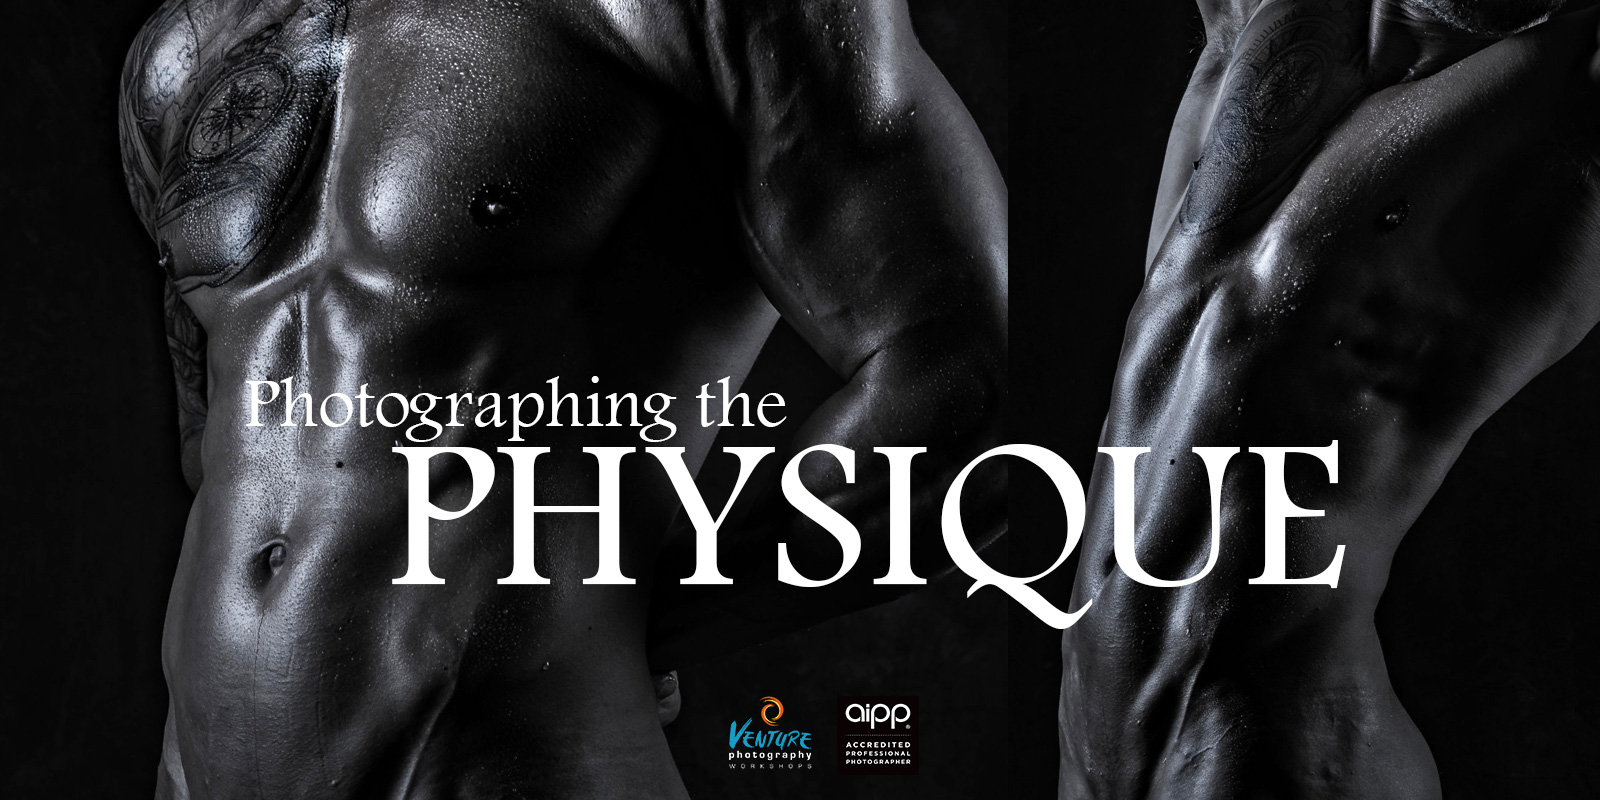 Photographing the Physique